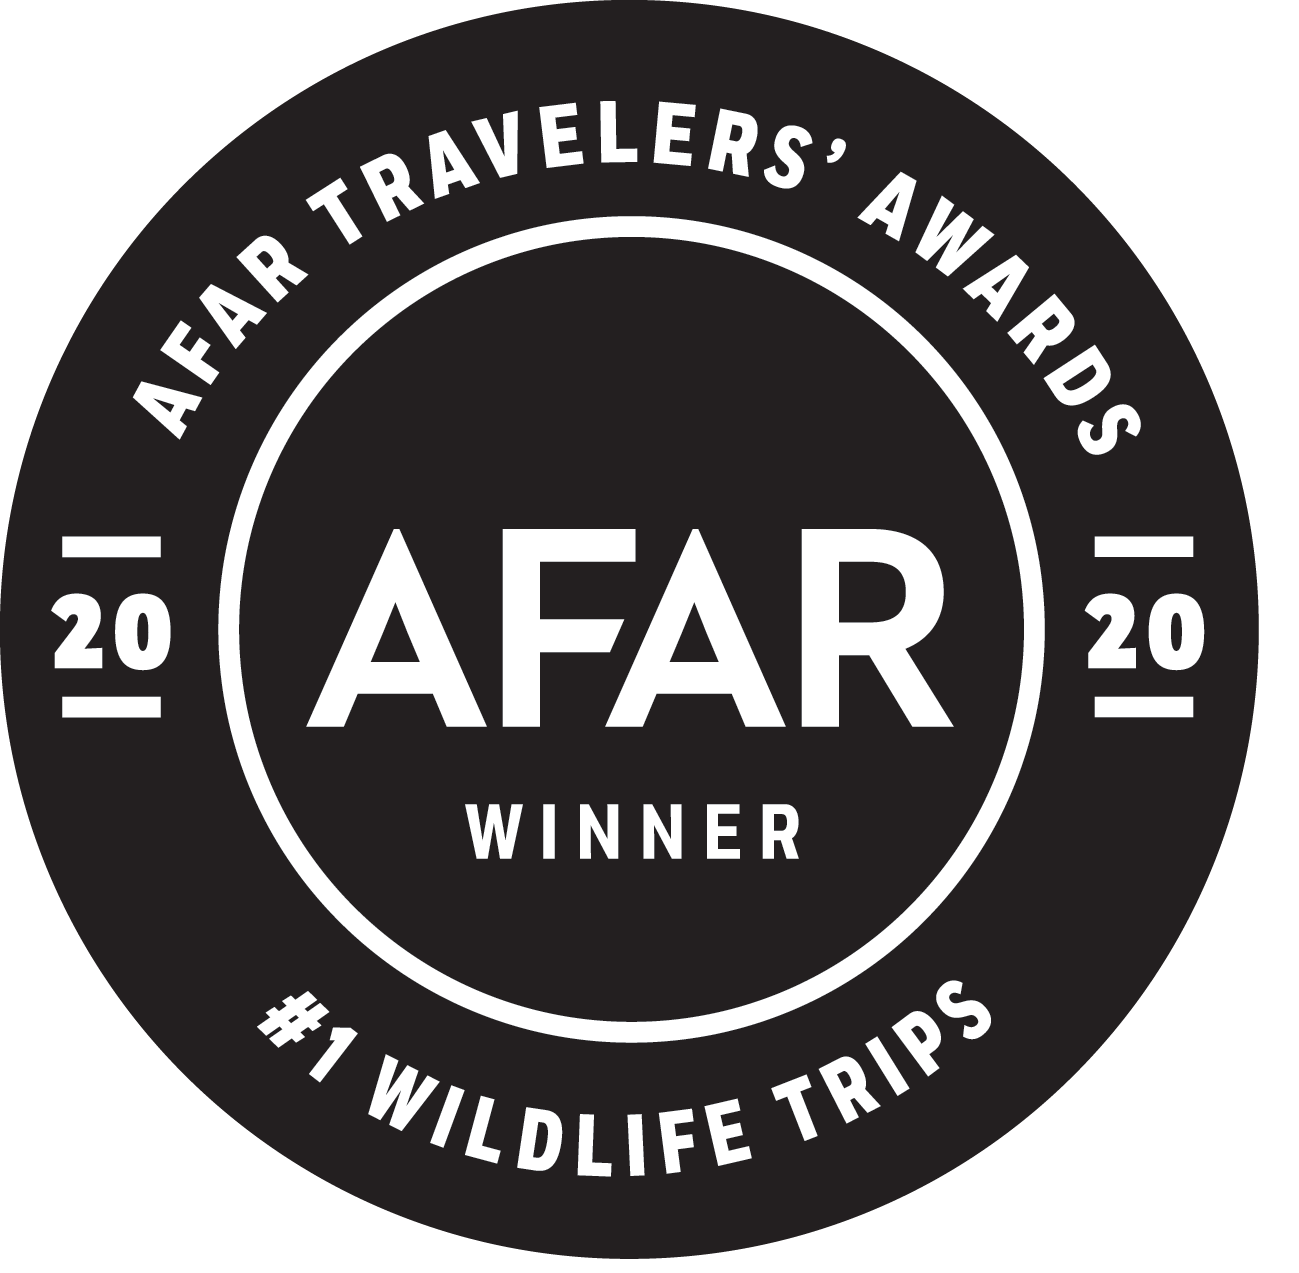 Afar 2020 wildlife